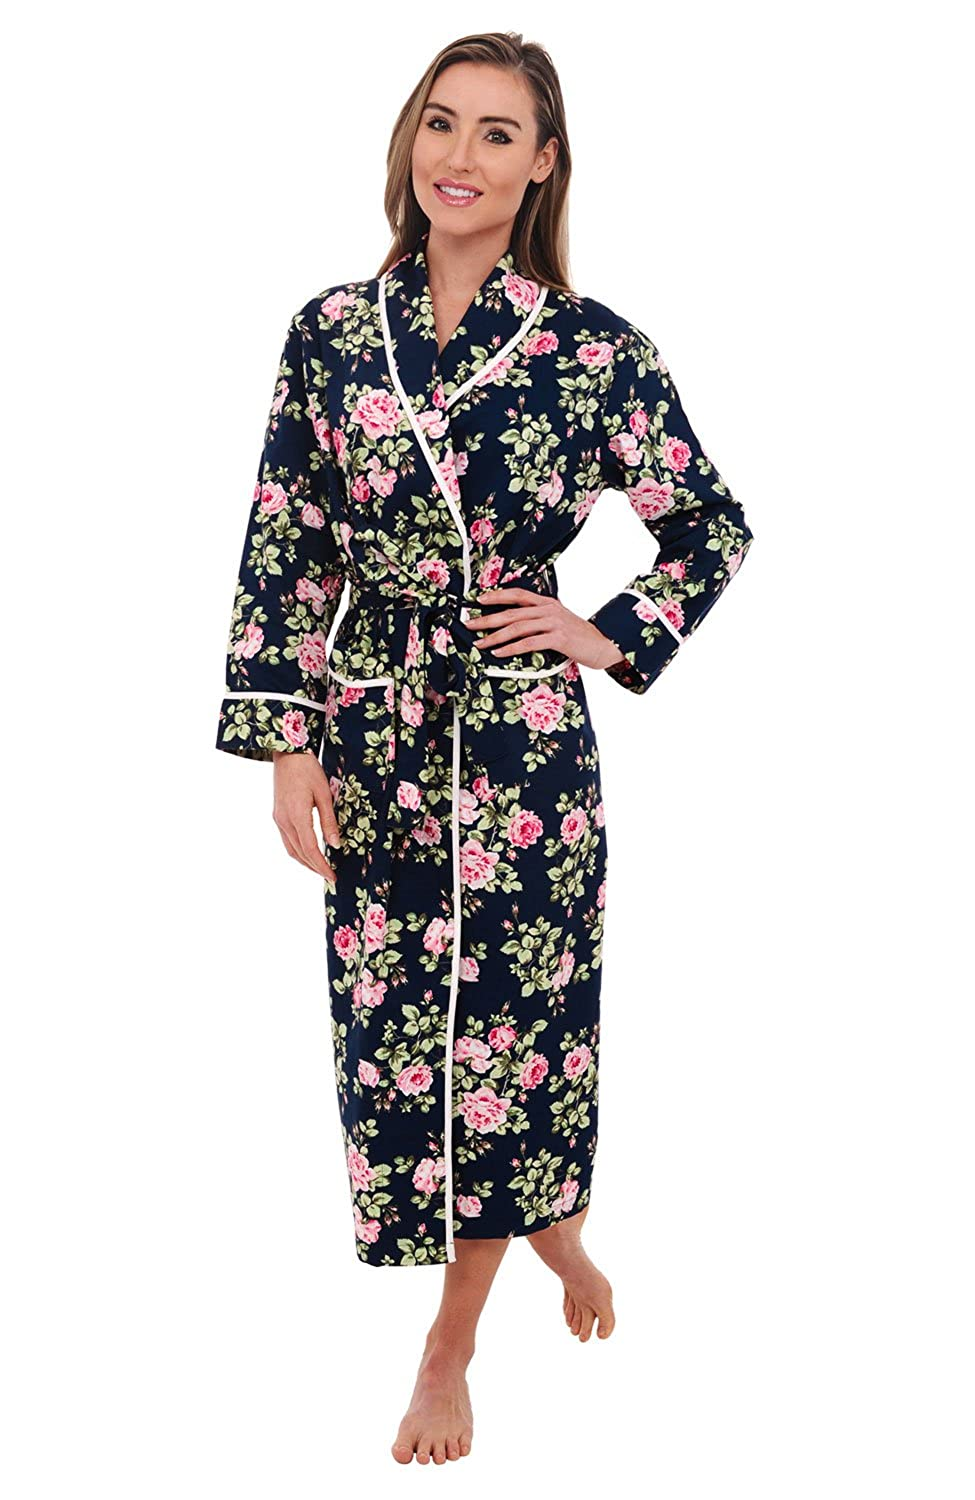 Top 20 Best Bathrobes for Women Reviews 2019-2020 on Flipboard by ... 0e8e03a9b